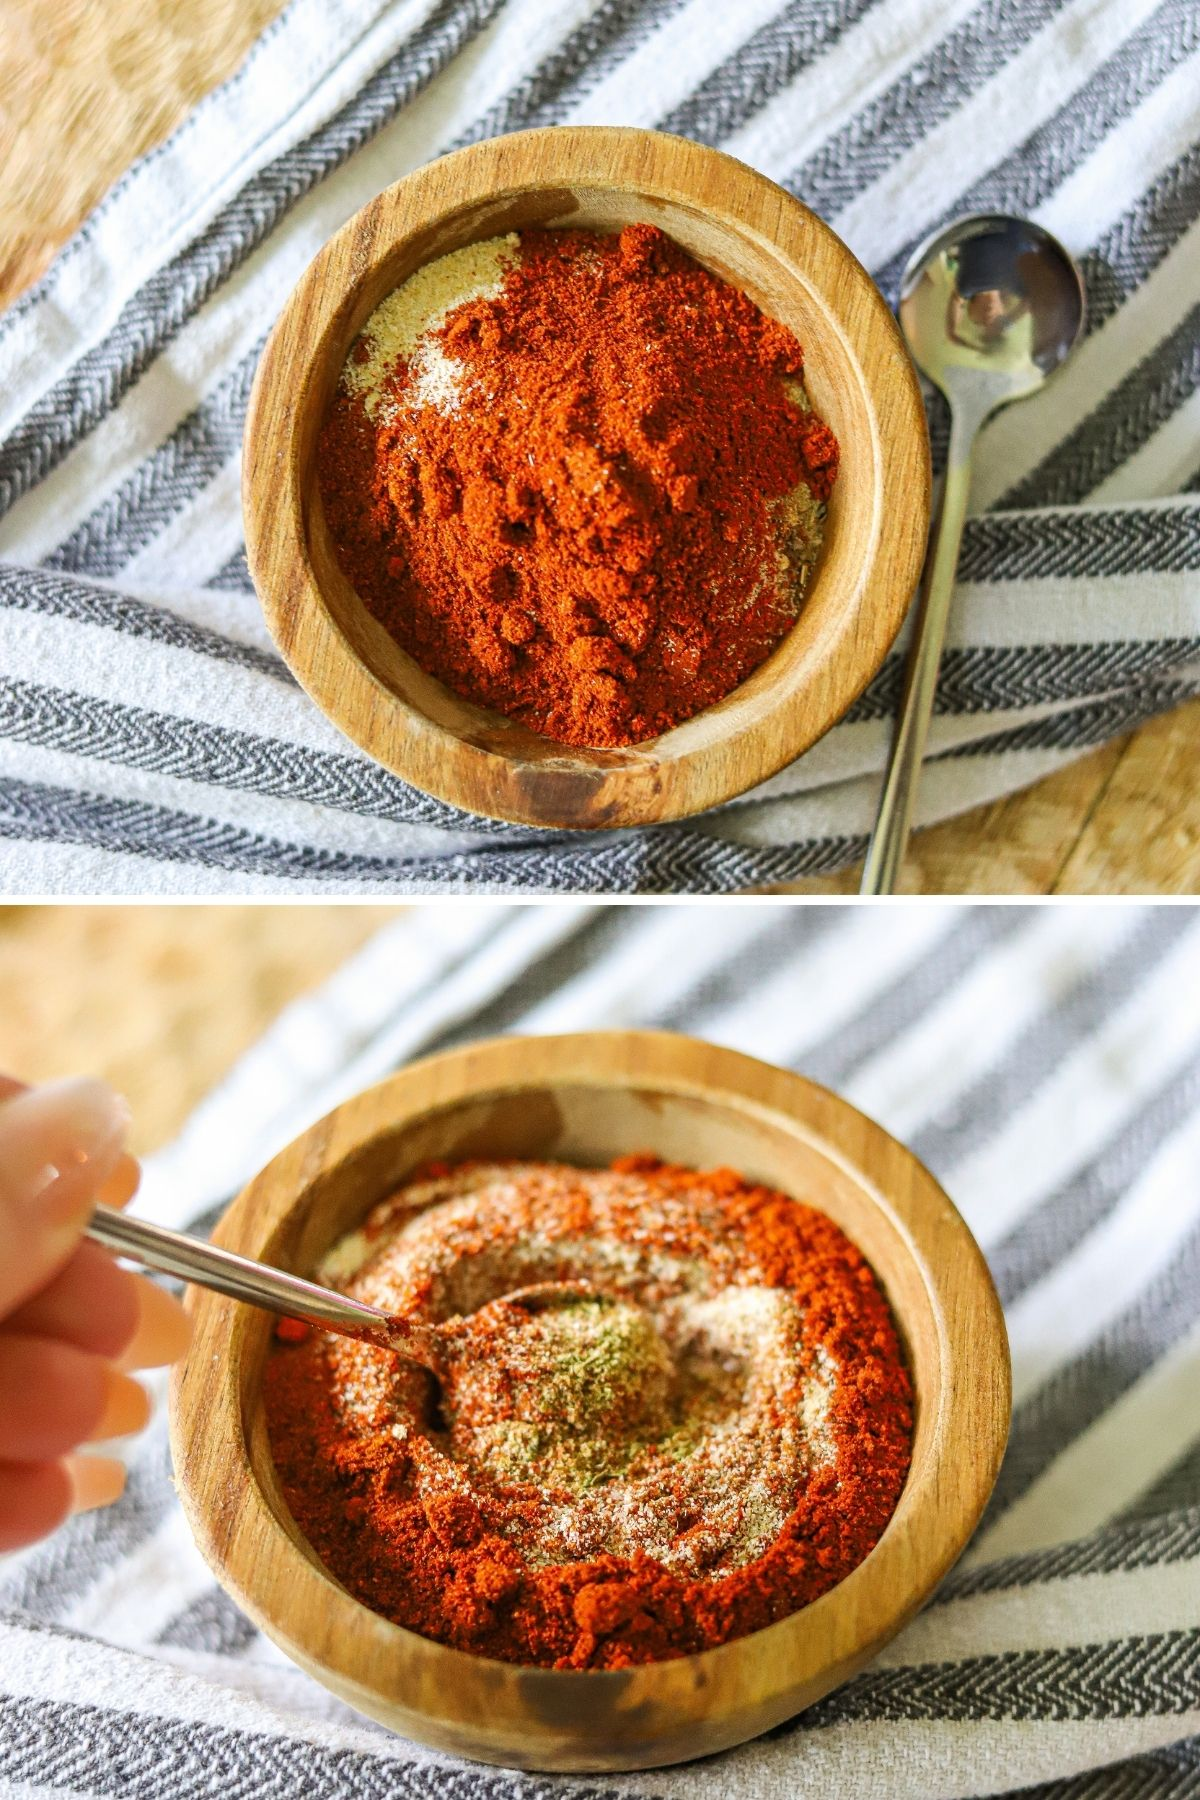 a two image collage showing the steps for making homemade blackening spice